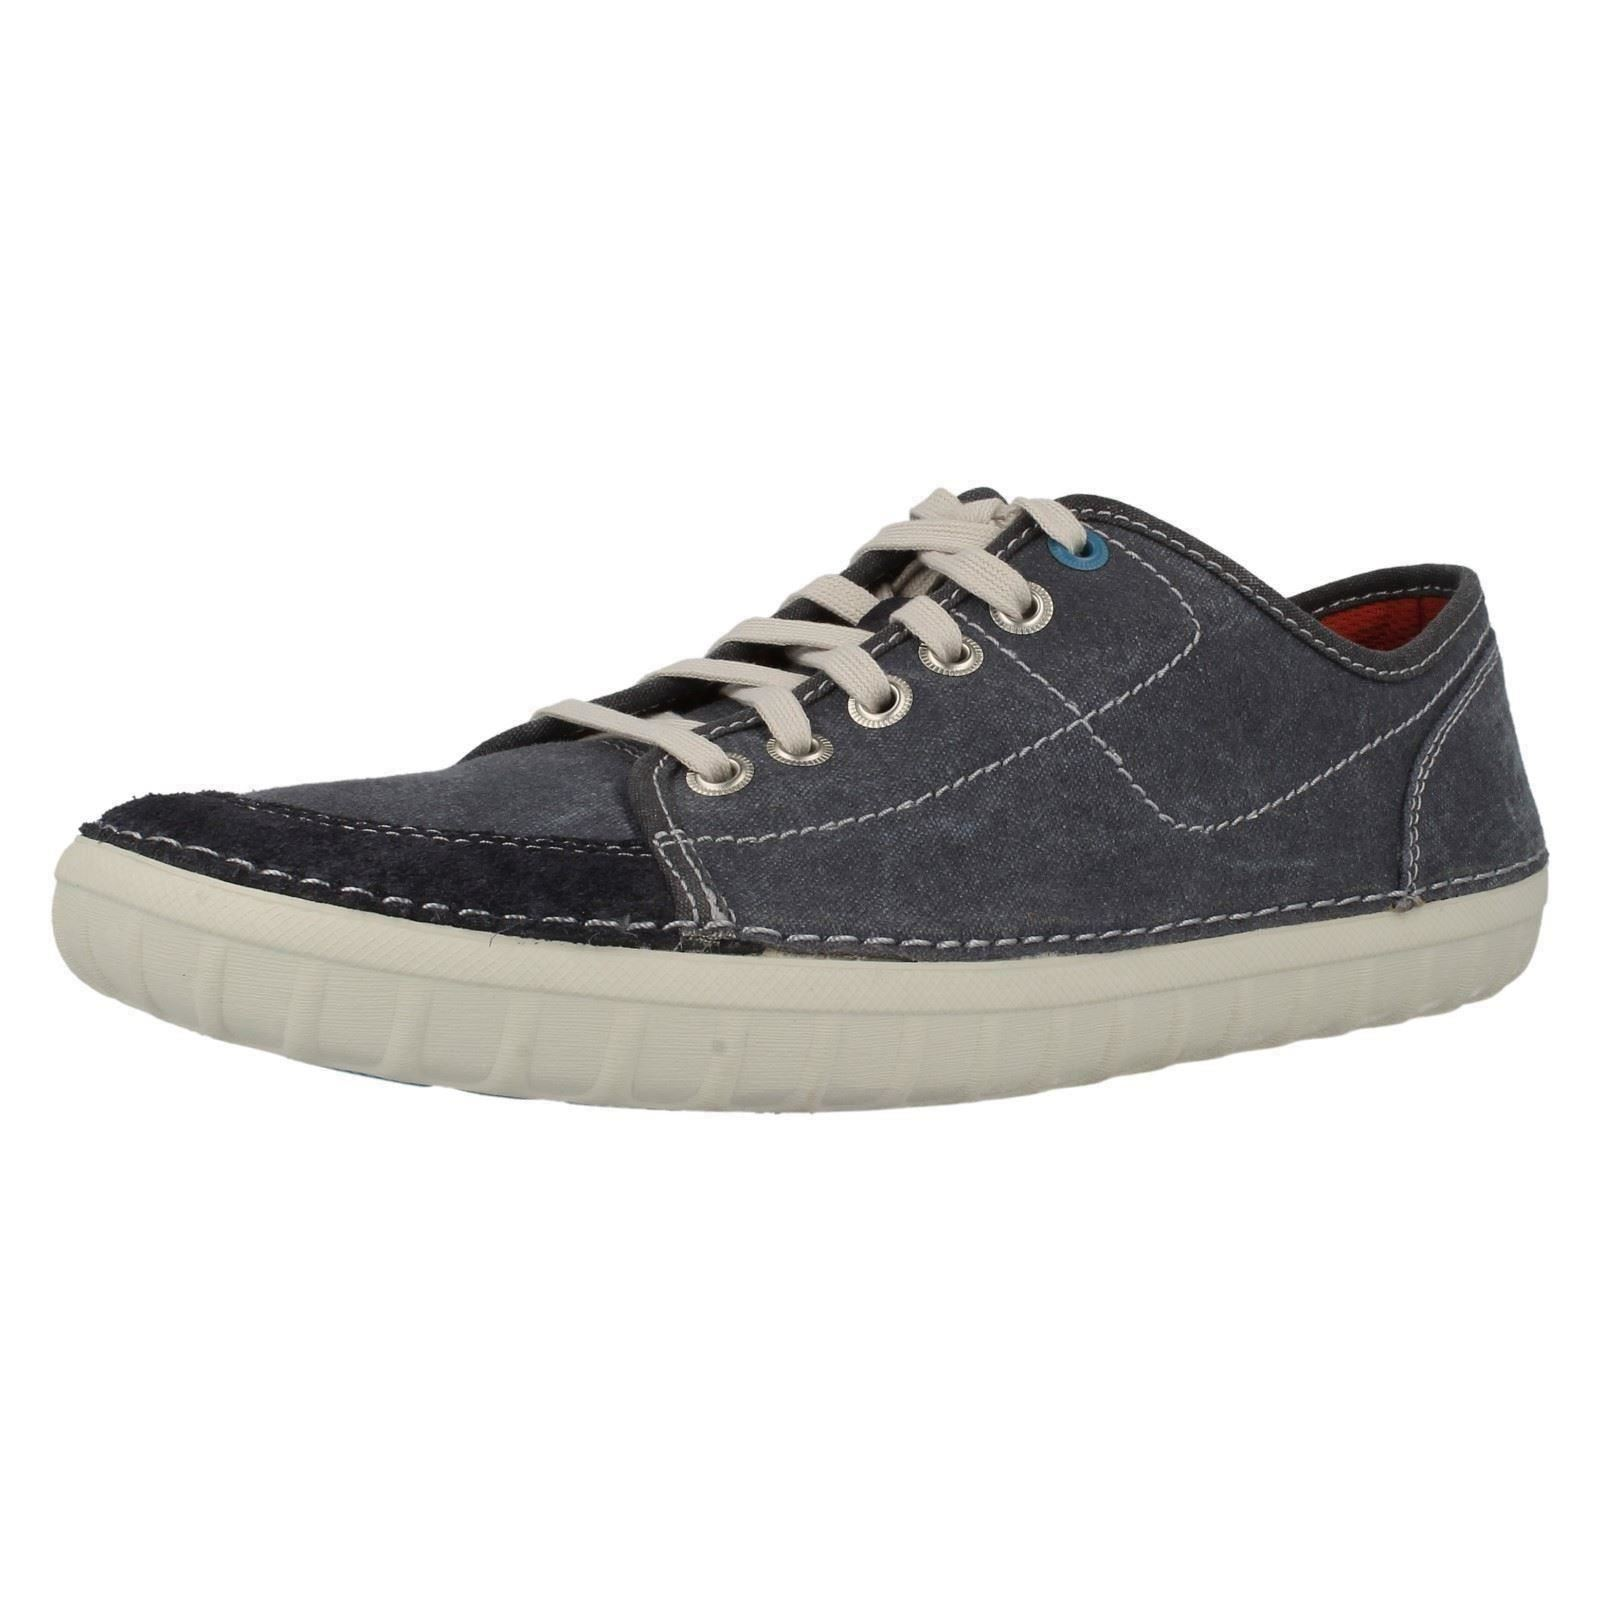 Free shipping and returns on All Men's Canvas Shoes at hereufilbk.gq